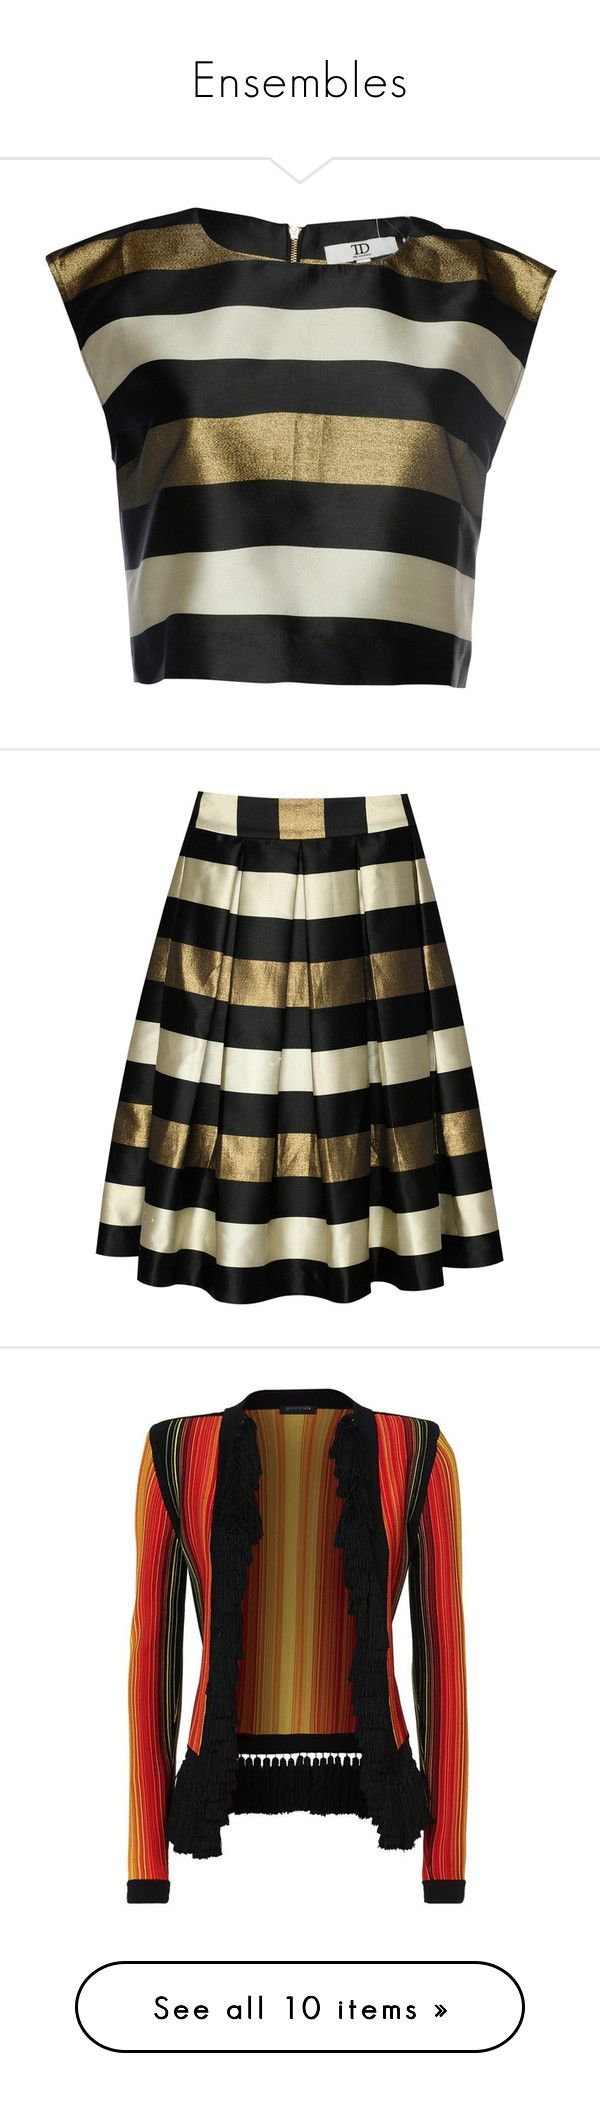 """""""Ensembles"""" by rafakeka on Polyvore featuring tops, crop top, patterned tops, sparkly crop top, cap sleeve tops, cream top, striped crop top, skirts, midi skirt e flared skirt"""